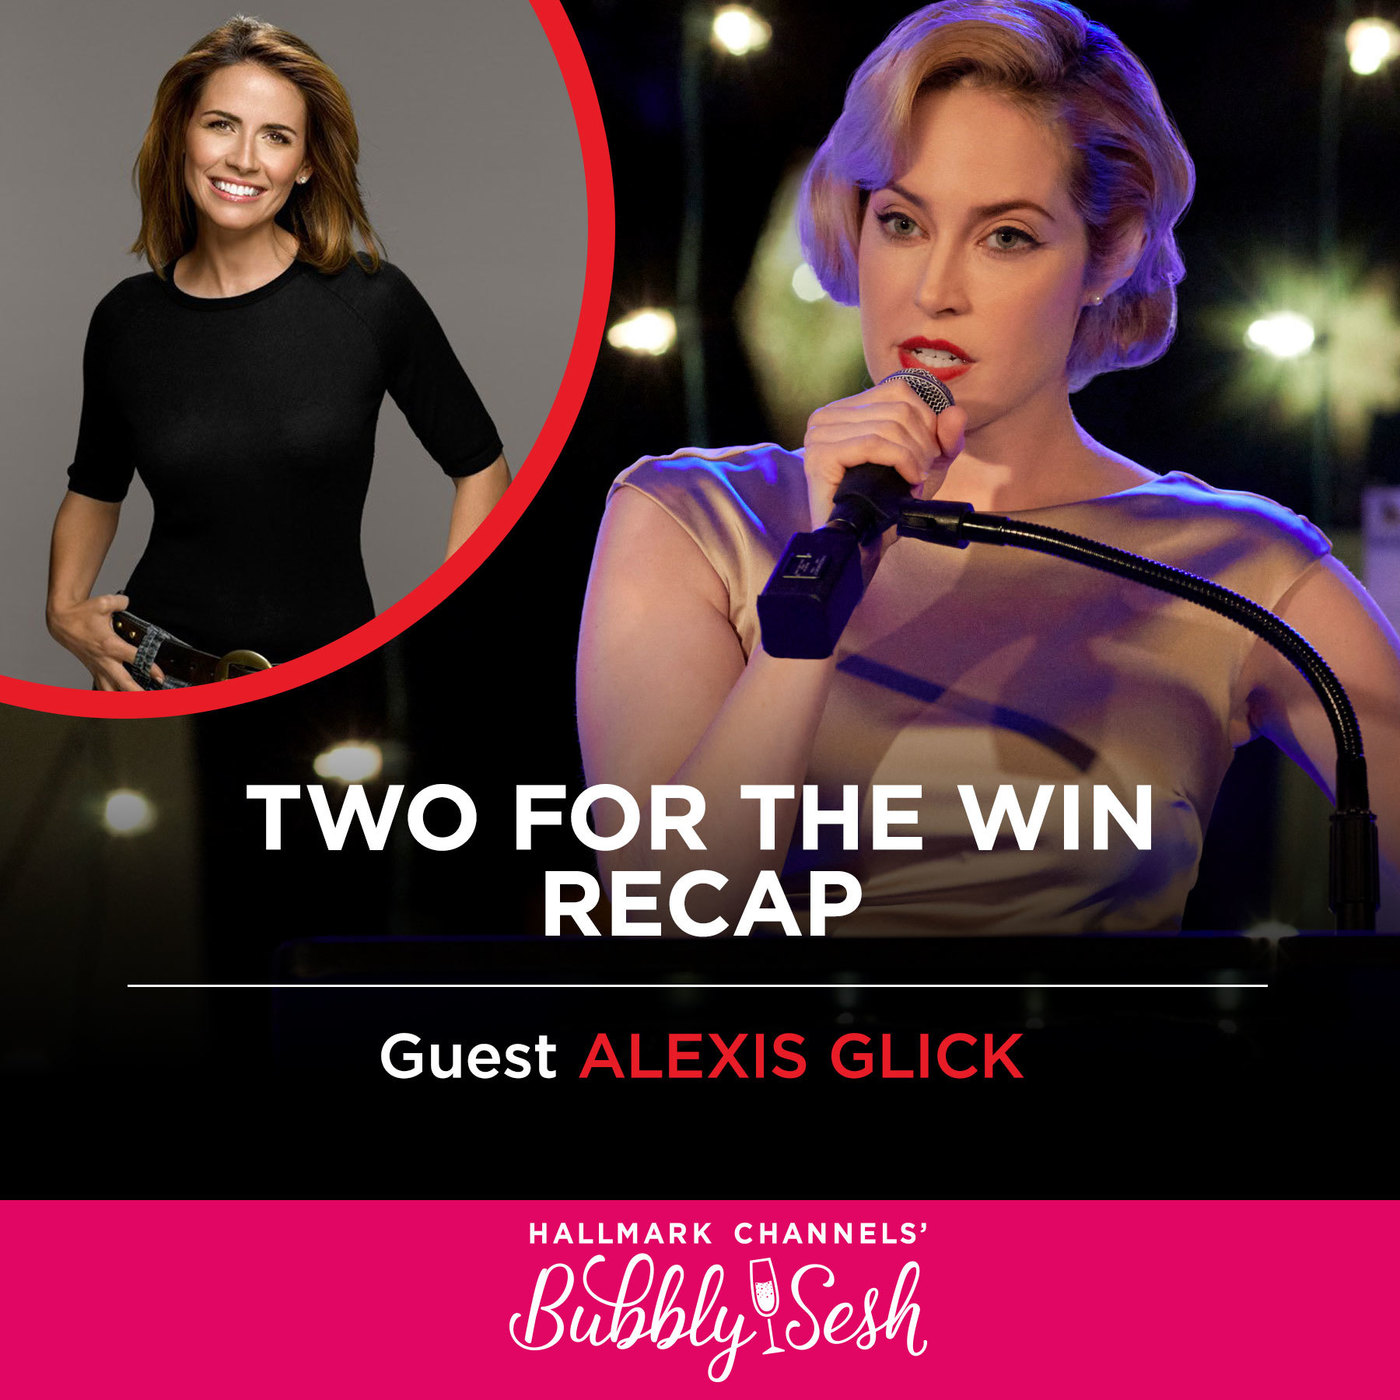 Two for the Win Recap with Guest Ceo of GENYOUth, Alexis Glick